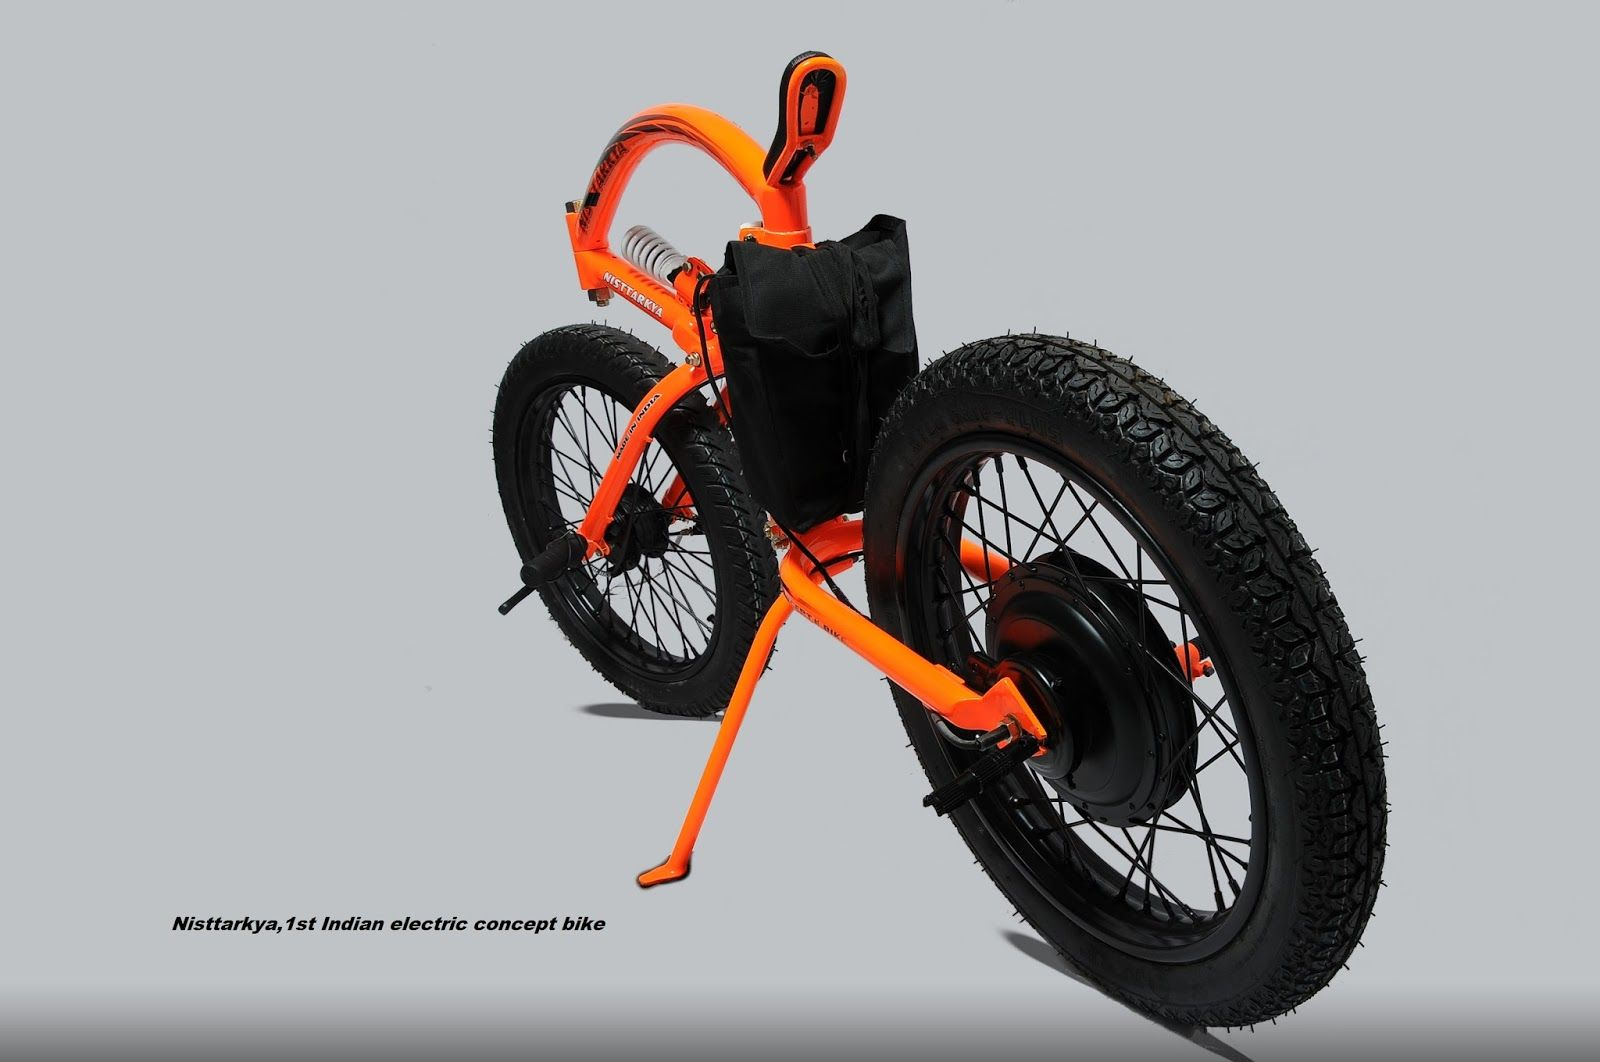 Nisttarkya Is India S First Electric Concept Bike Developed By